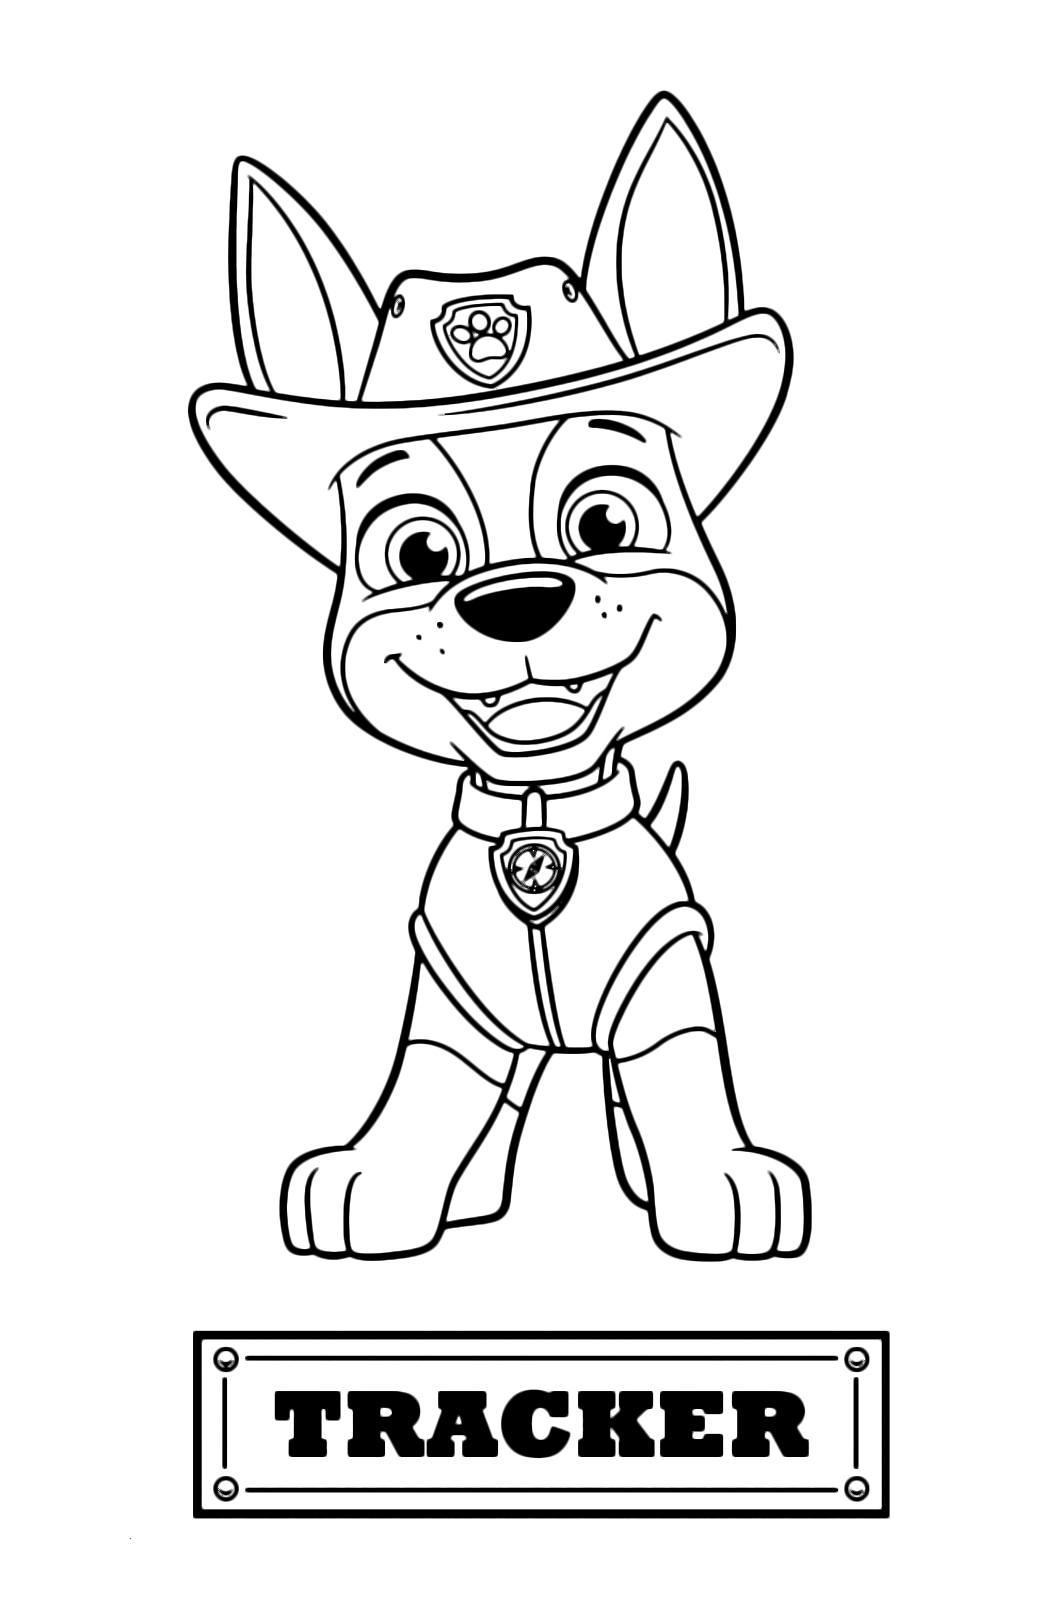 Paw Patrol Tracker Jack Russell Puppy Arrived From The